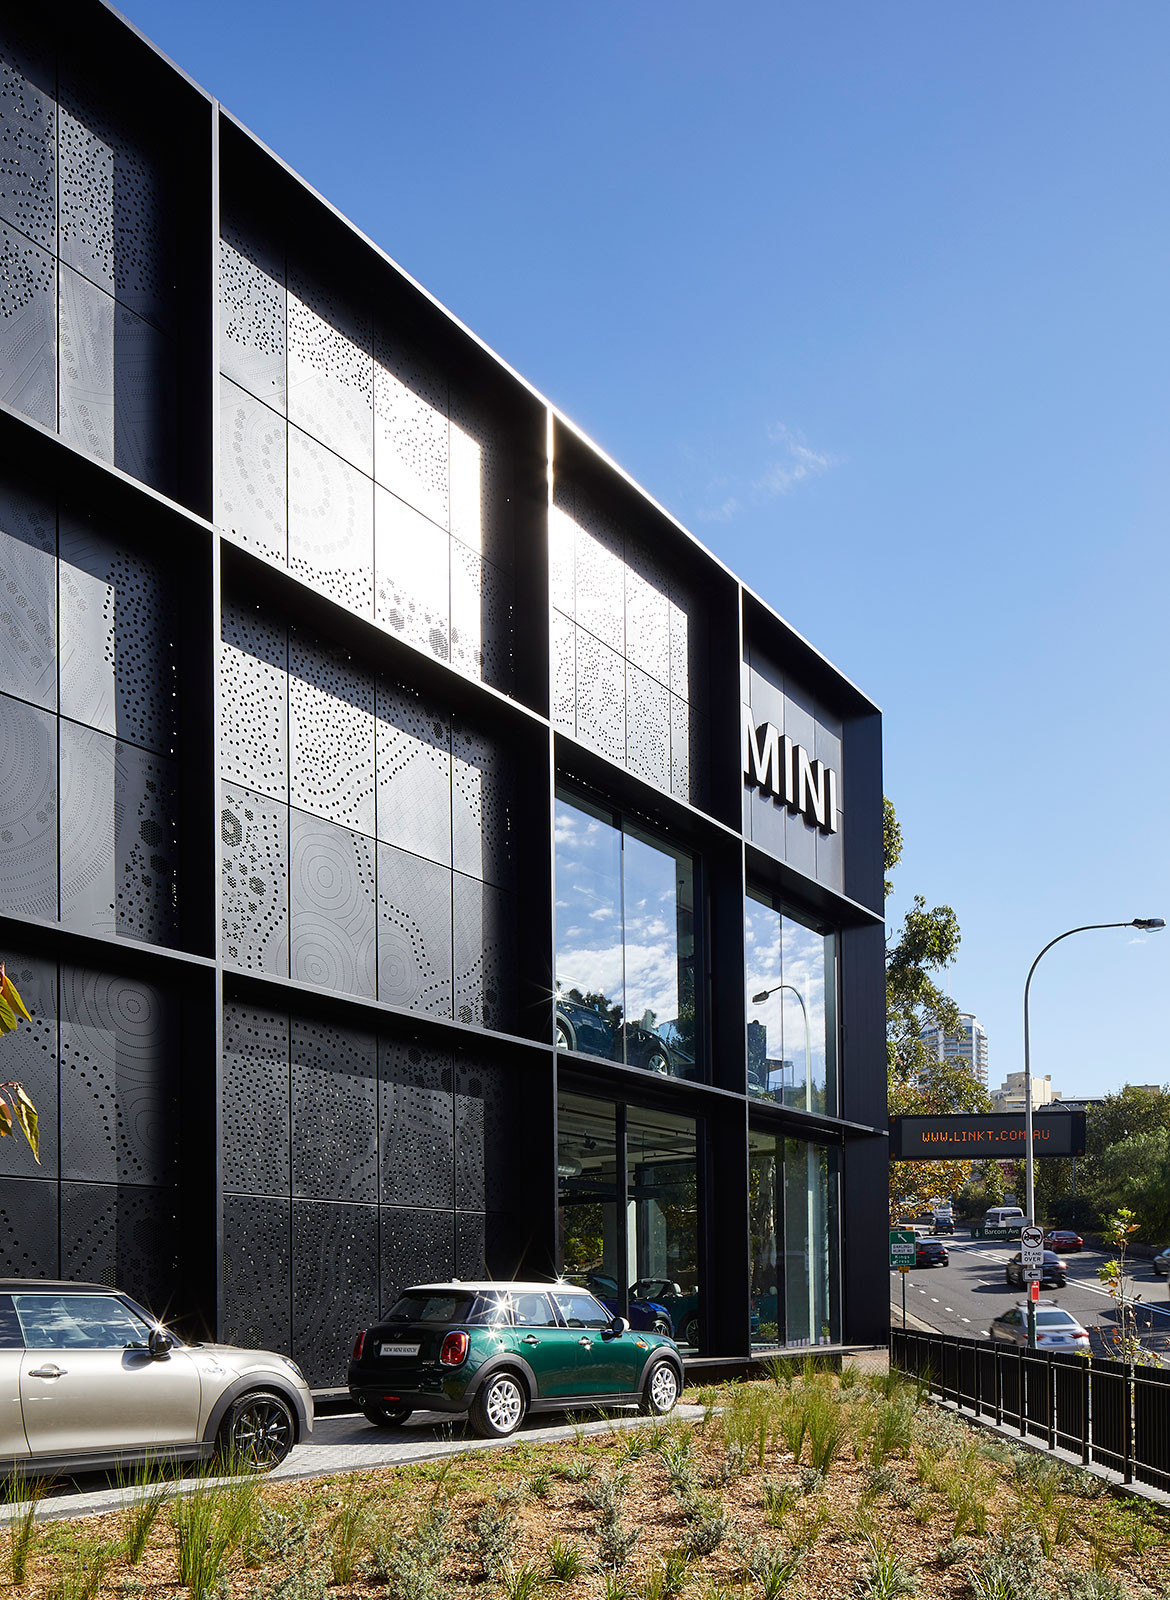 BMW MINI Car Showroom by SJB CC Marin Mischkulnig facade